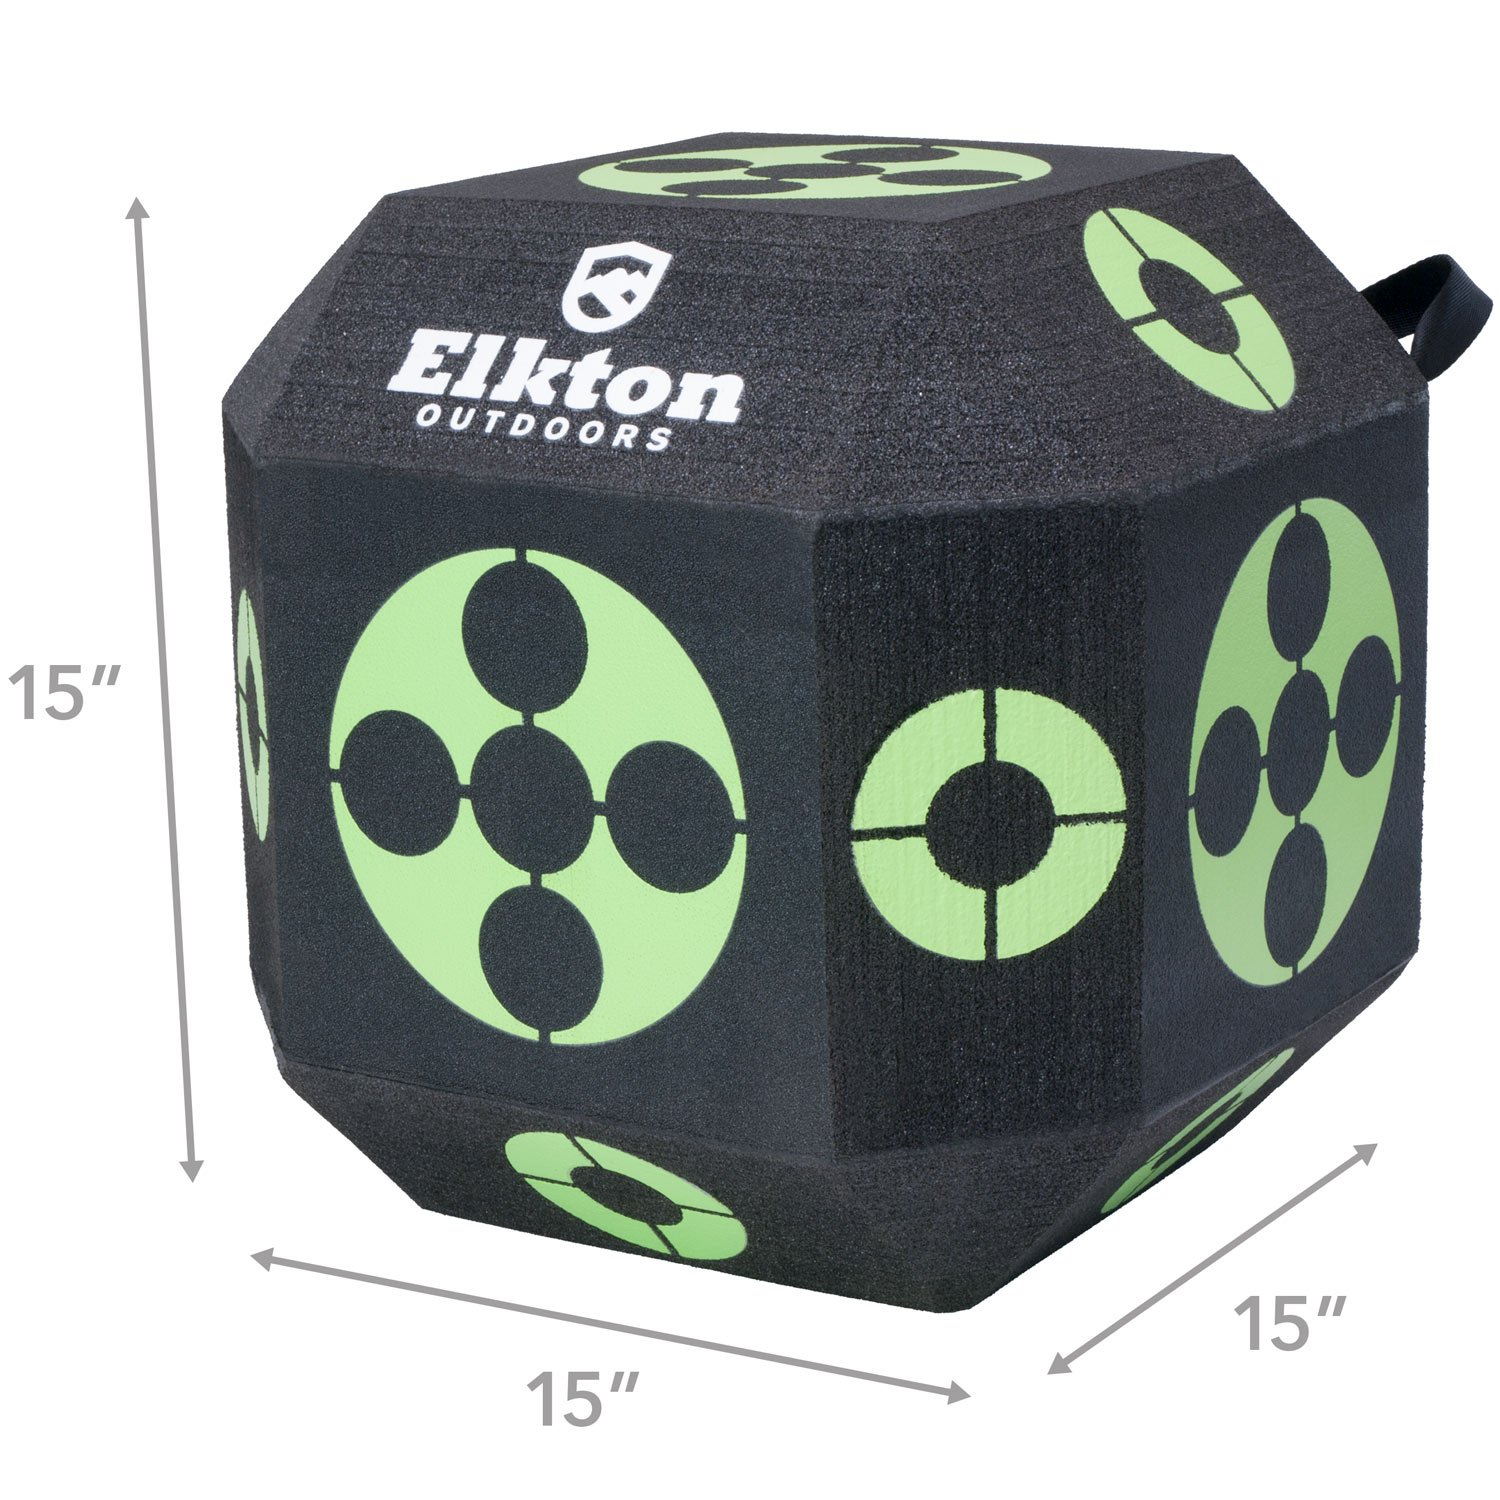 Elkton Outdoors 2017 Edition 18-Sided 3D Cube Reusable Archery Target Constructed With Arrow Puller & Rapid Self Healing XPE Foam for all Arrow Types by Elkton Outdoors (Image #2)